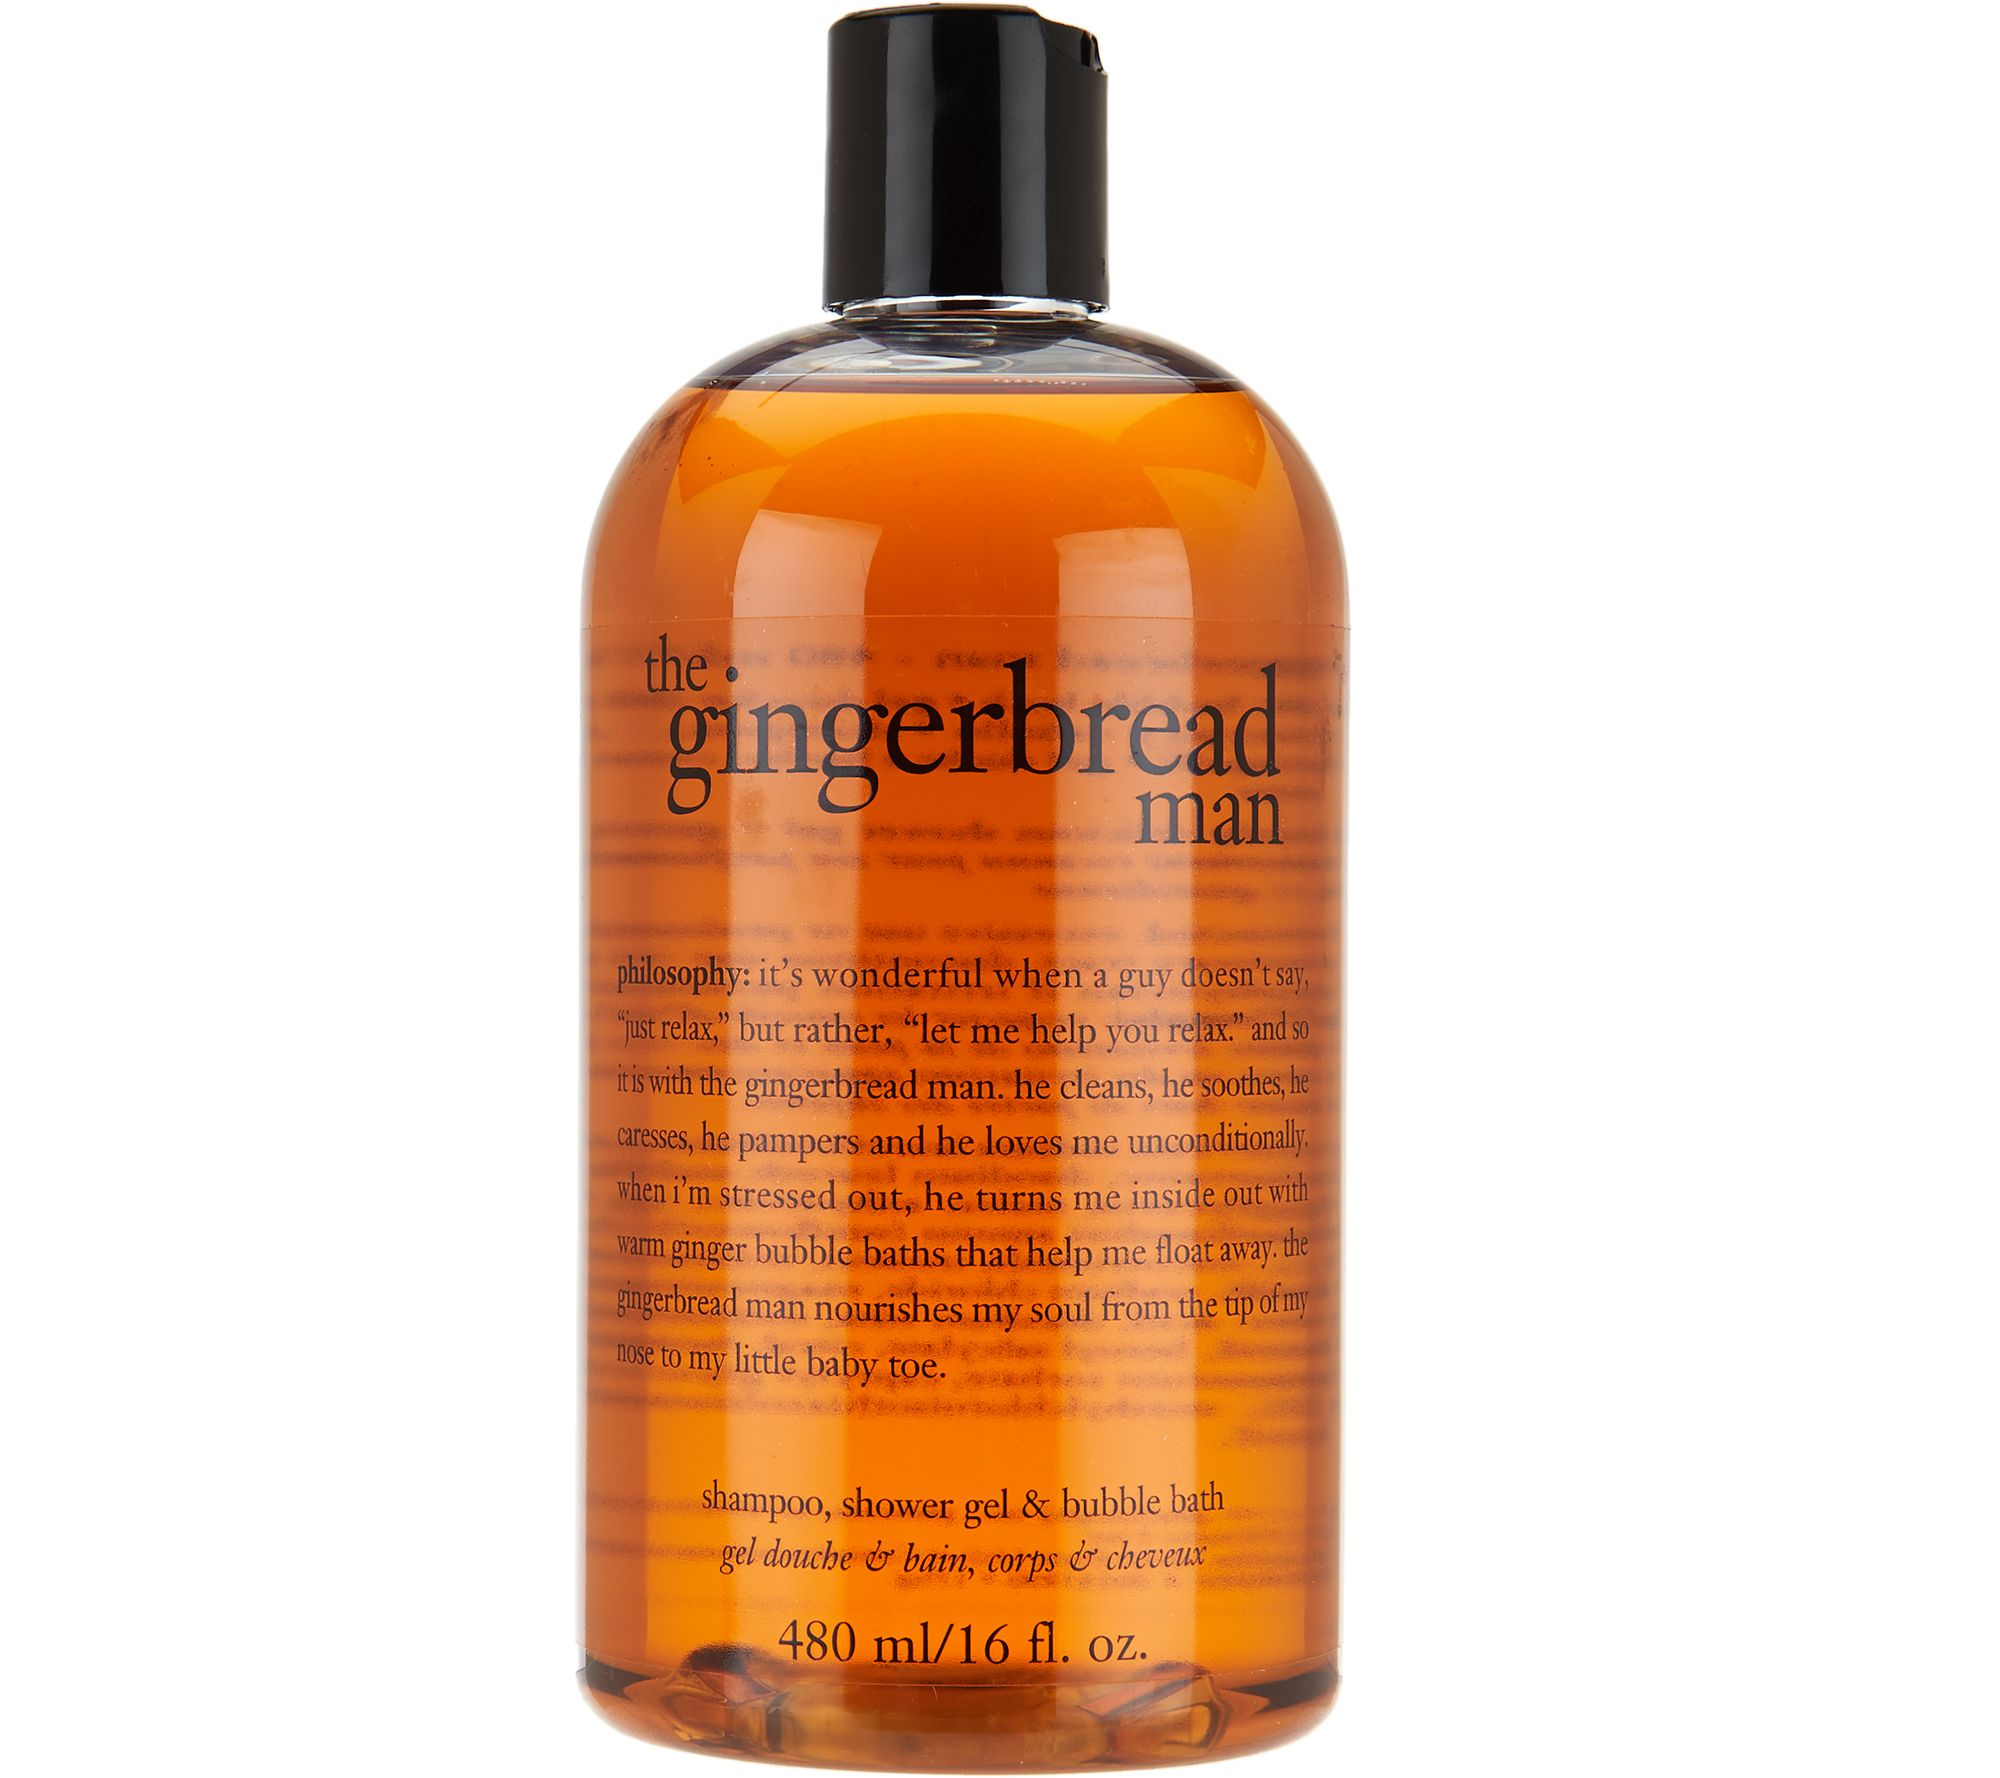 philosophy gingerbread man 3 in 1 shower gel trio page 1 qvc com